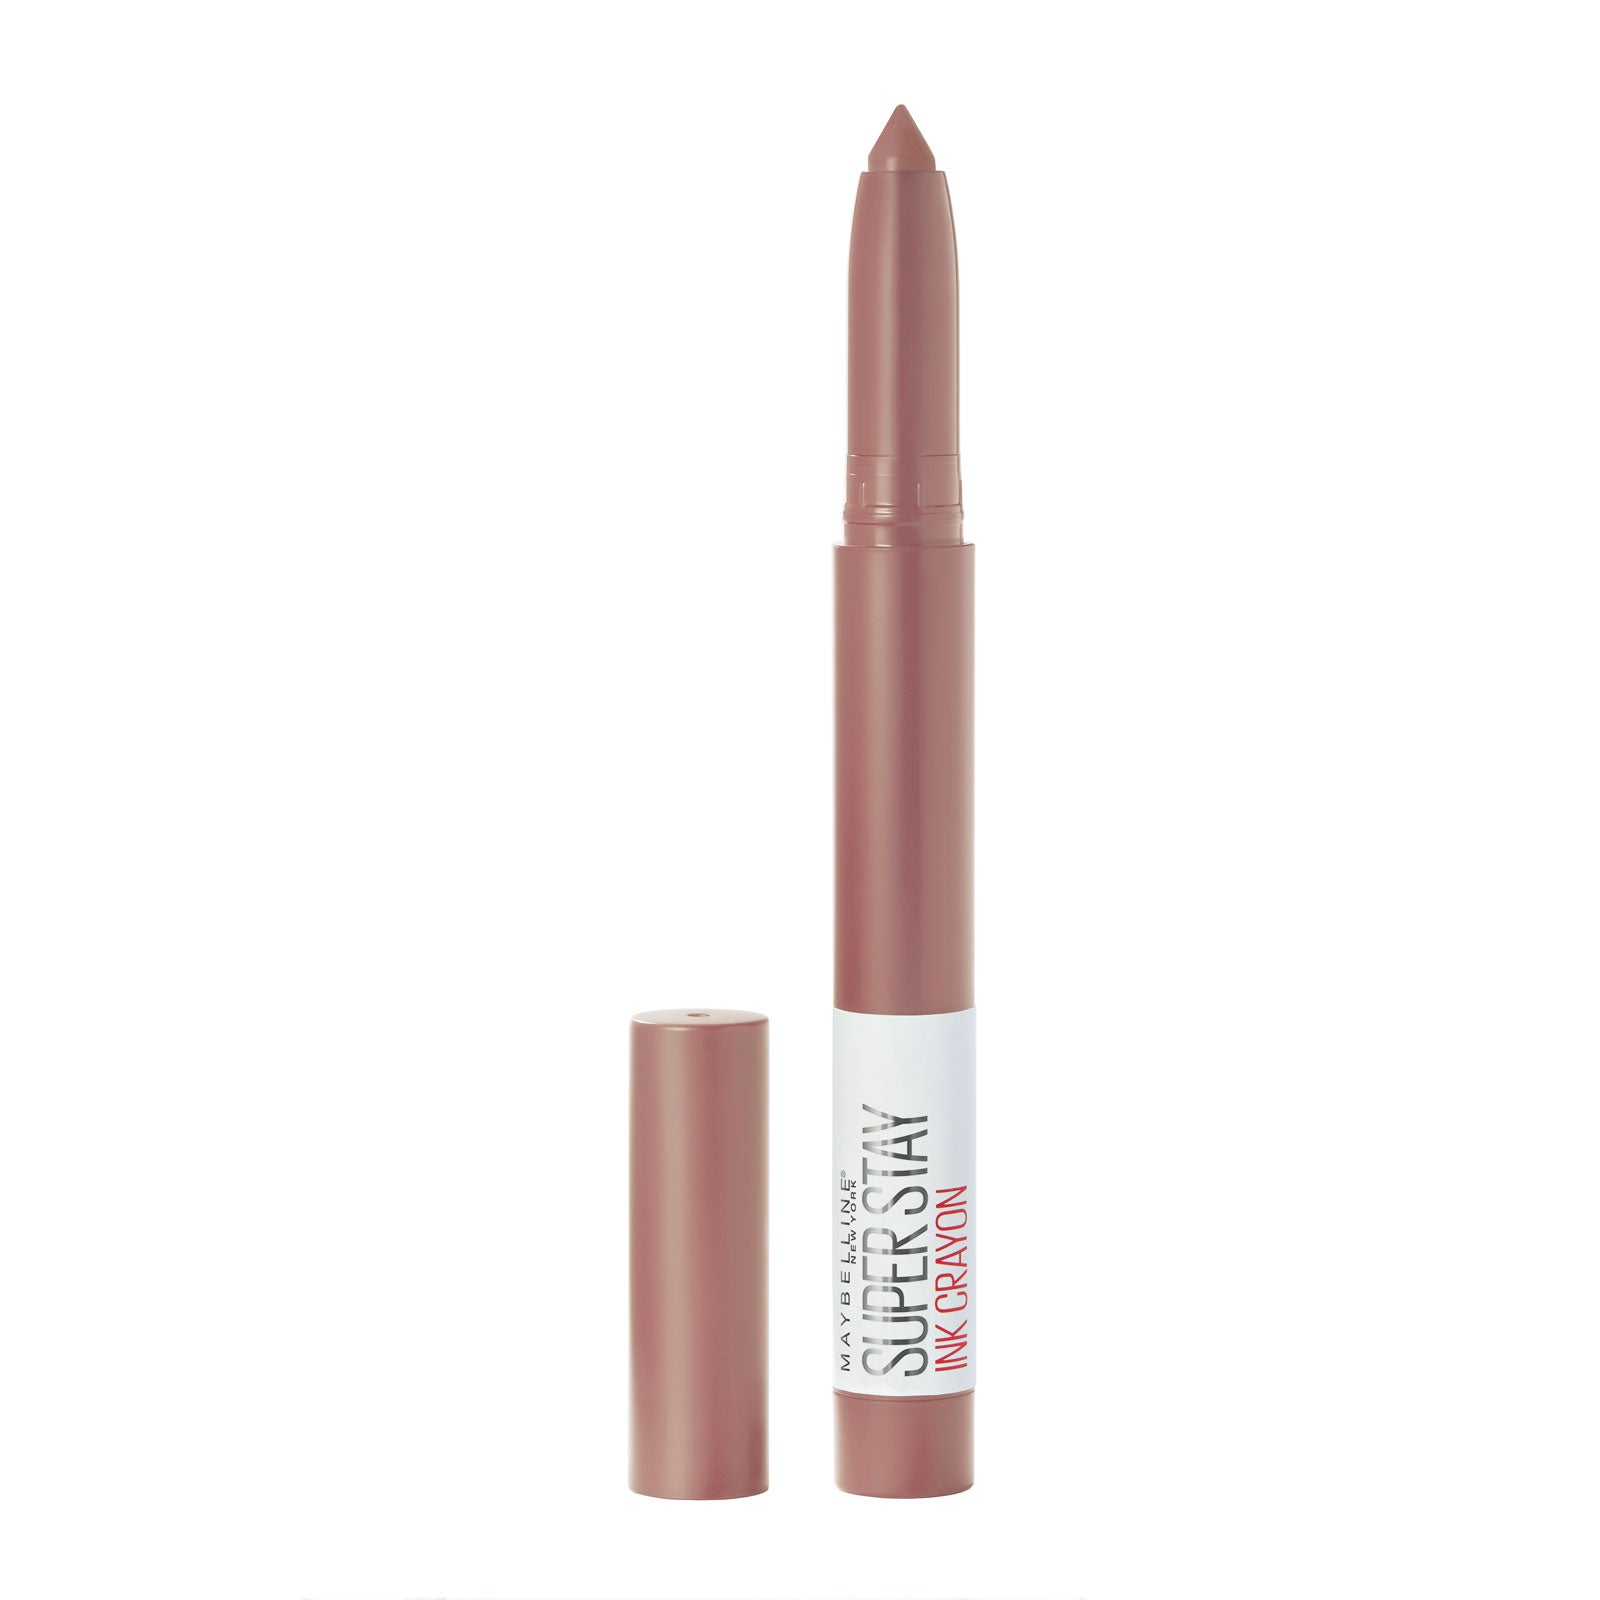 Maybelline Superstay Matte Ink Crayon Lipstick 14g